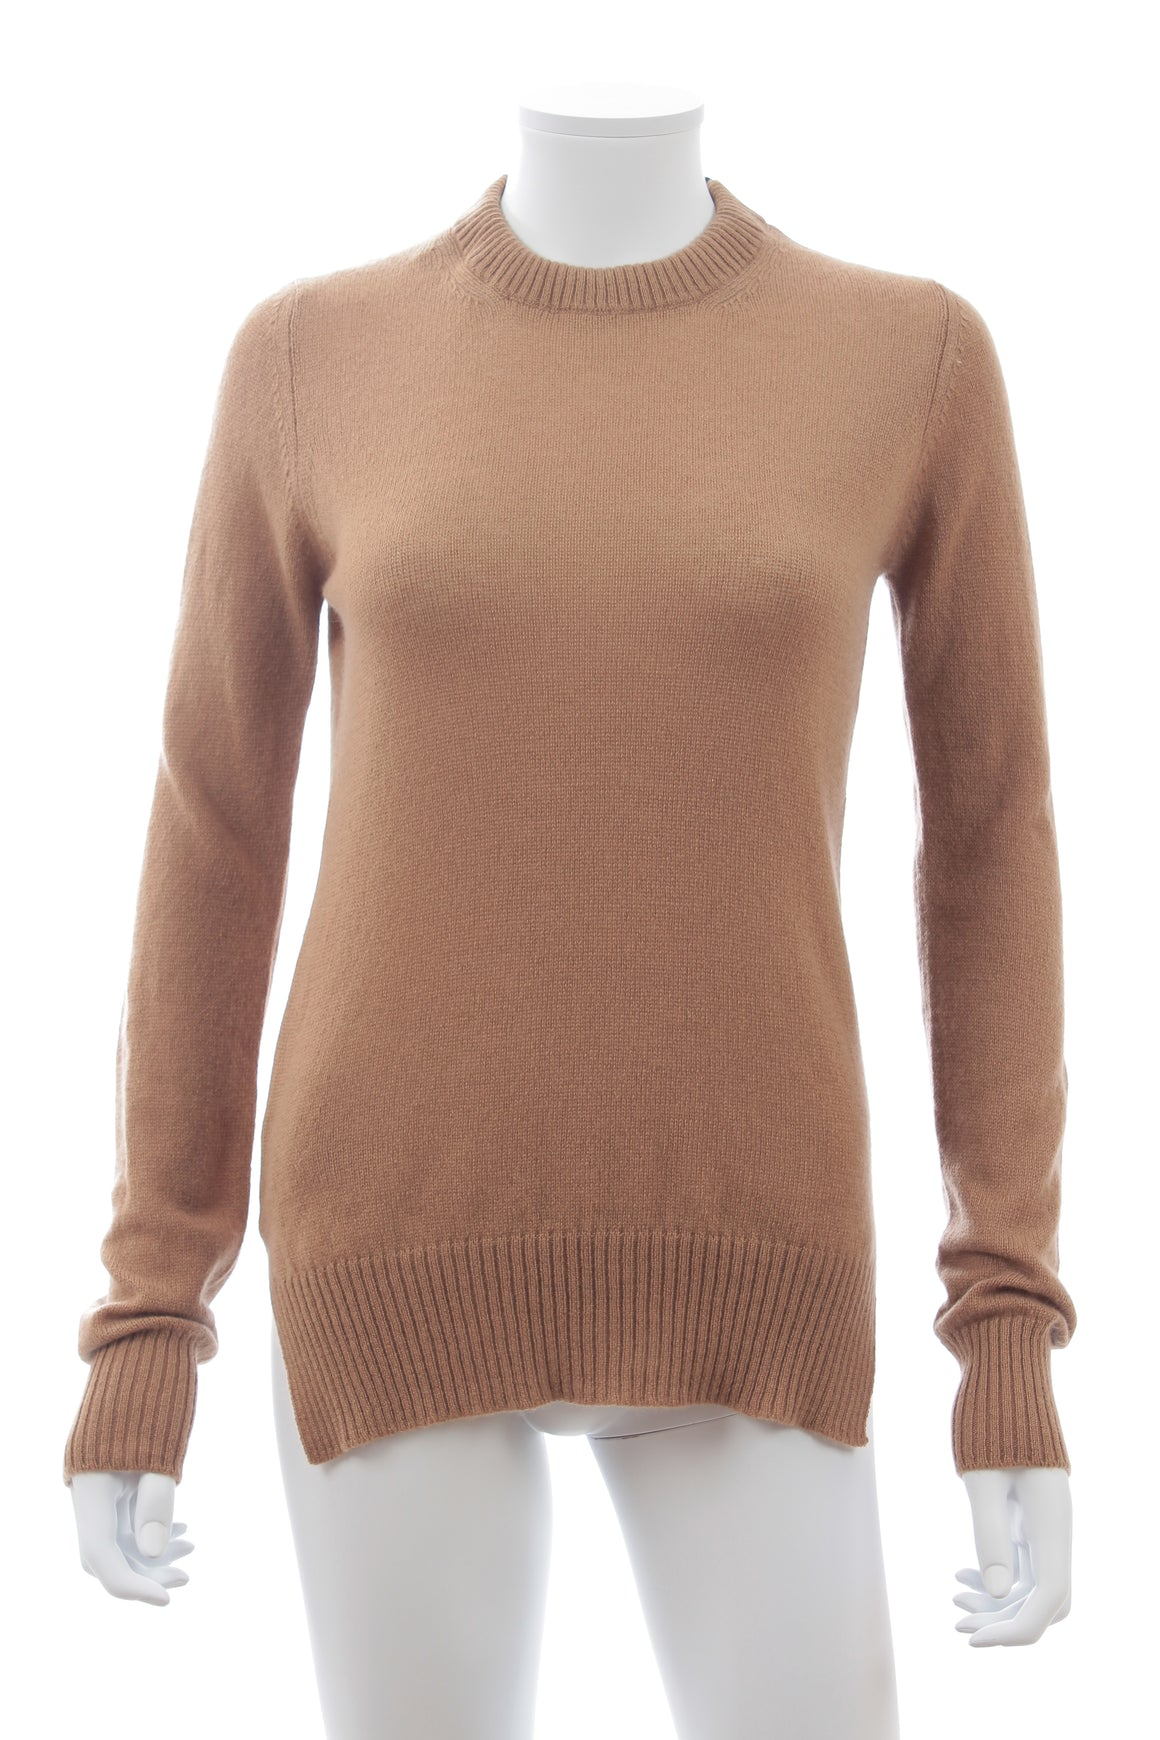 Prada Tie-Back Cashmere Sweater